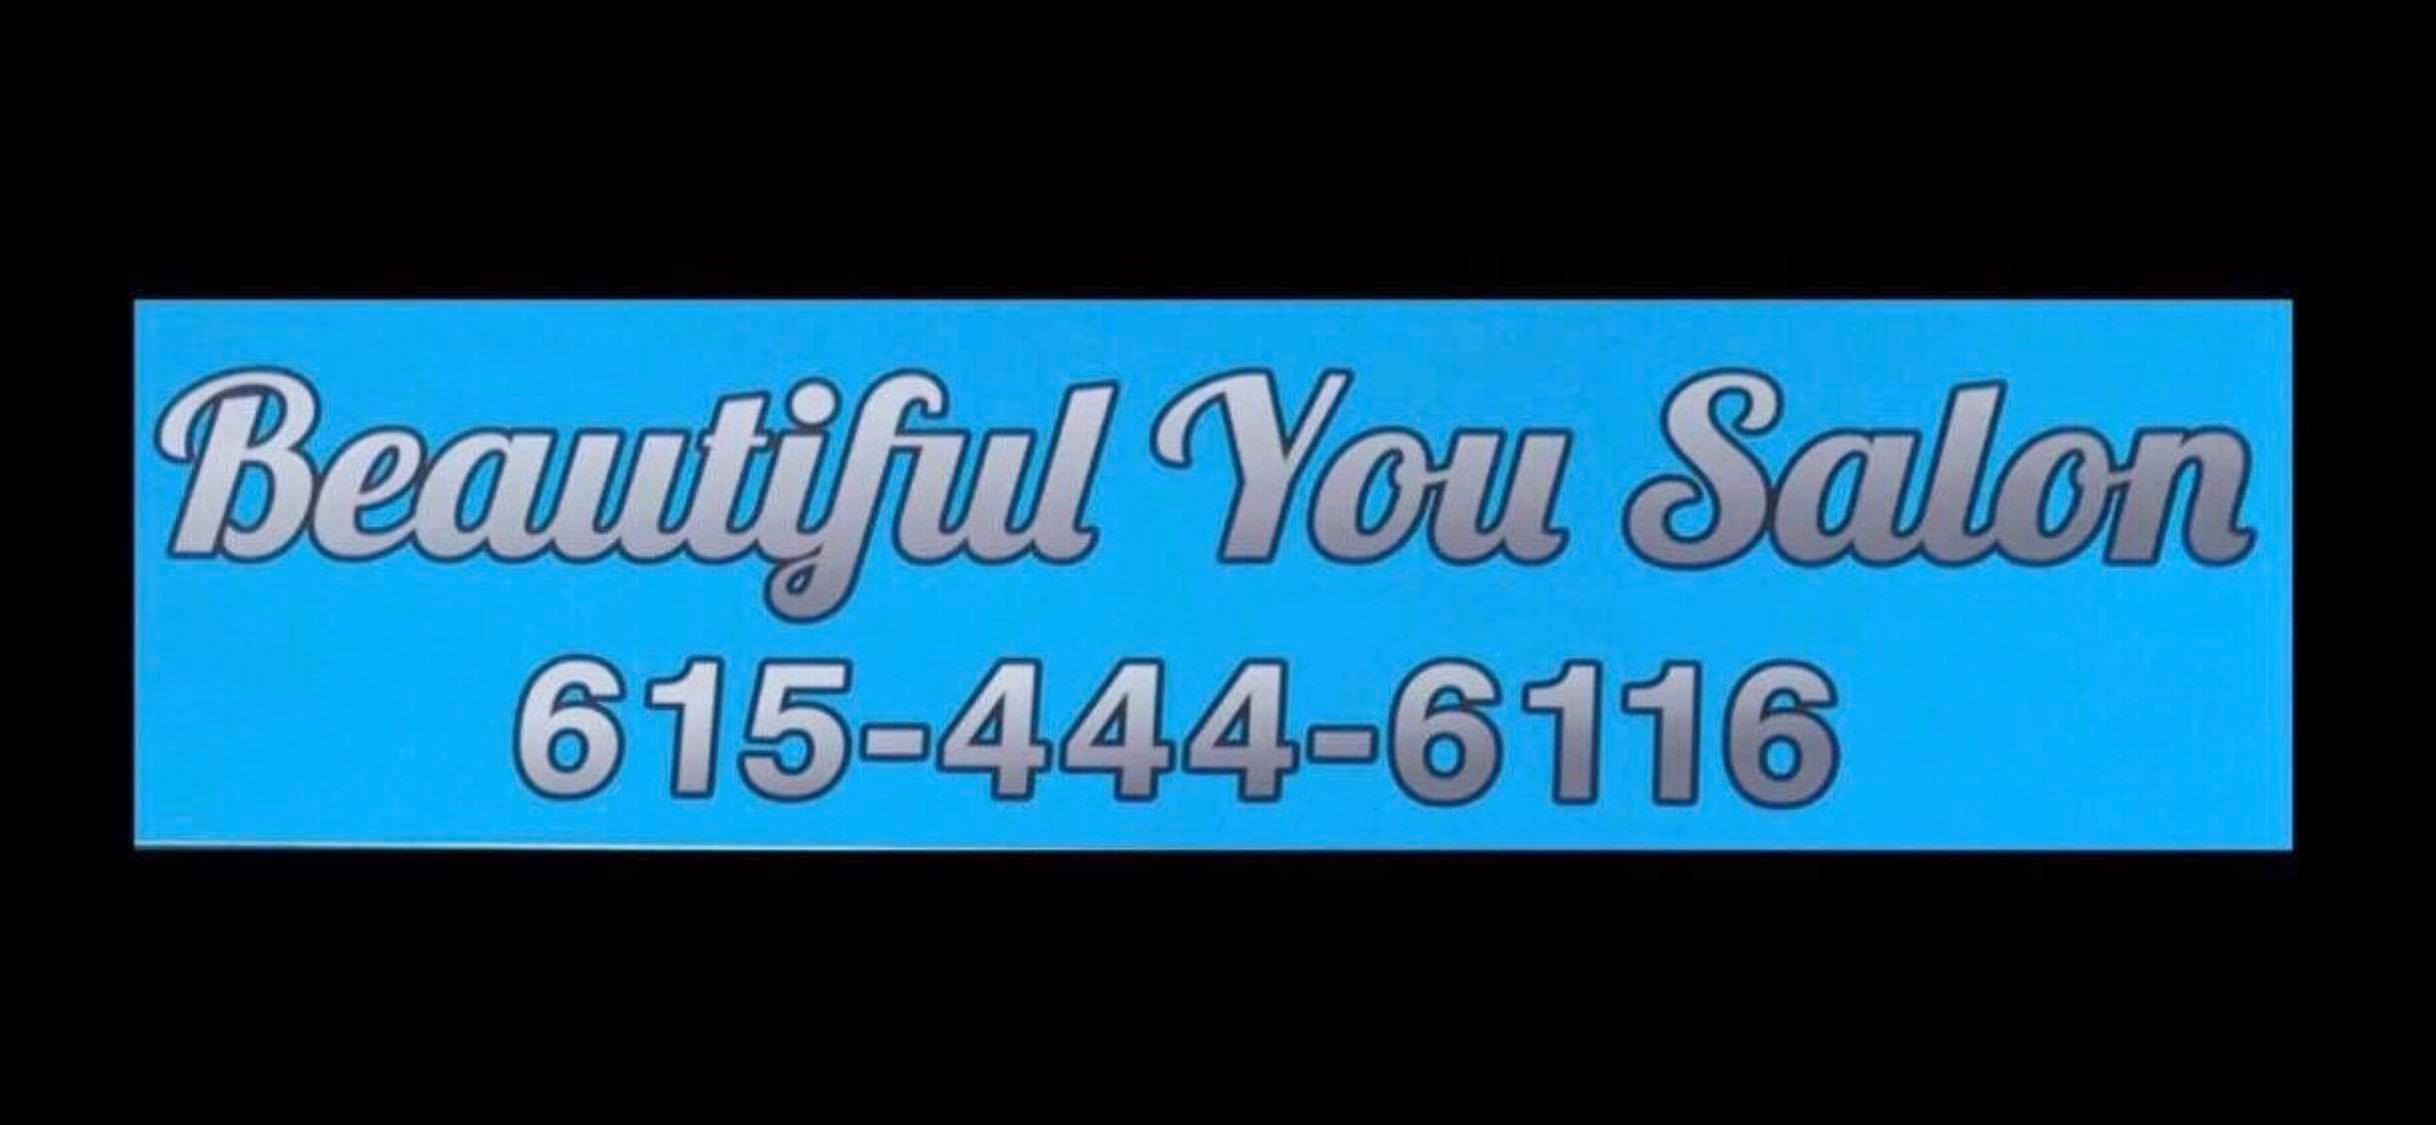 Beautiful You Salon